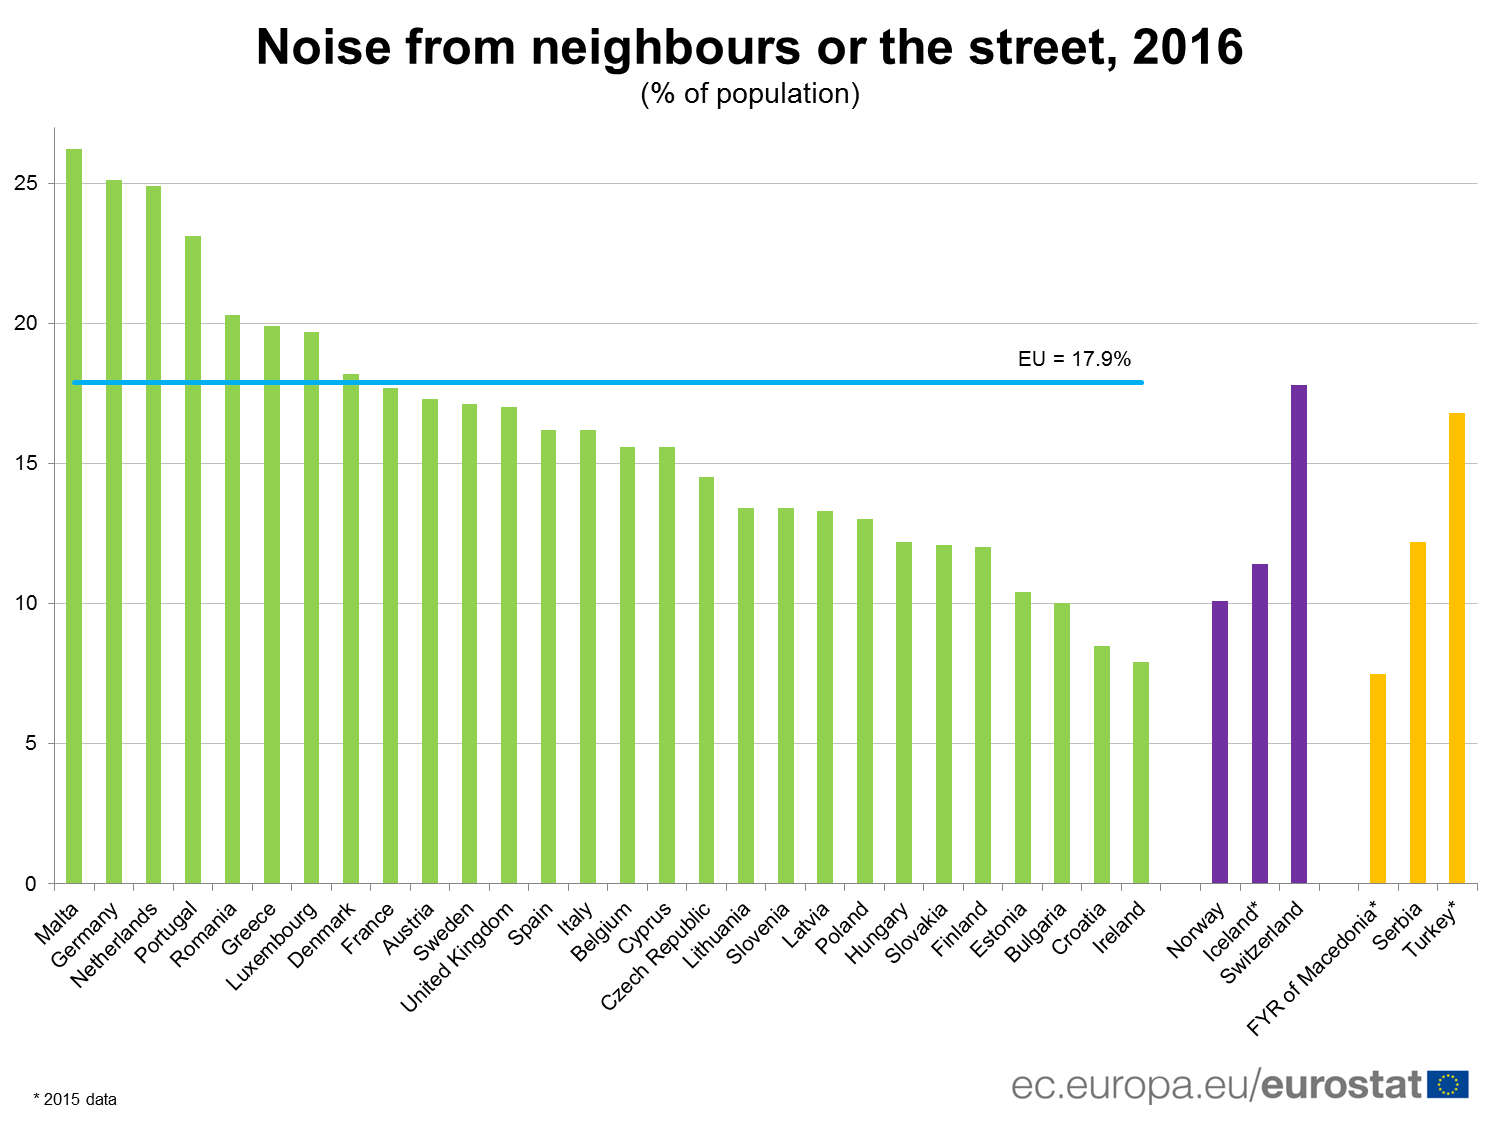 Noise from neighbours or the street, 2016